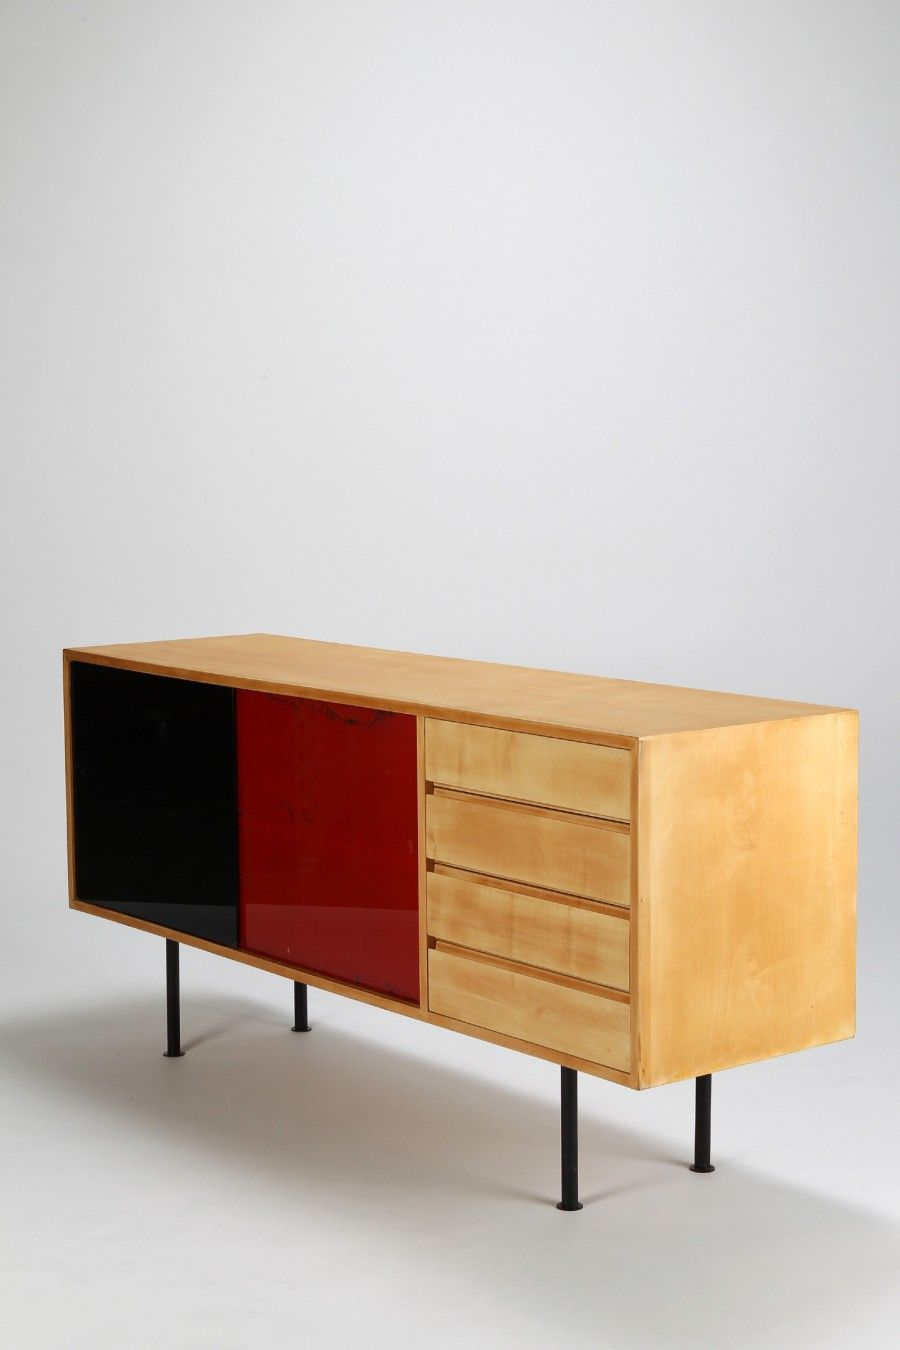 Kurt thut birch beech and glass sideboard for thut mobel for Modern mobel design